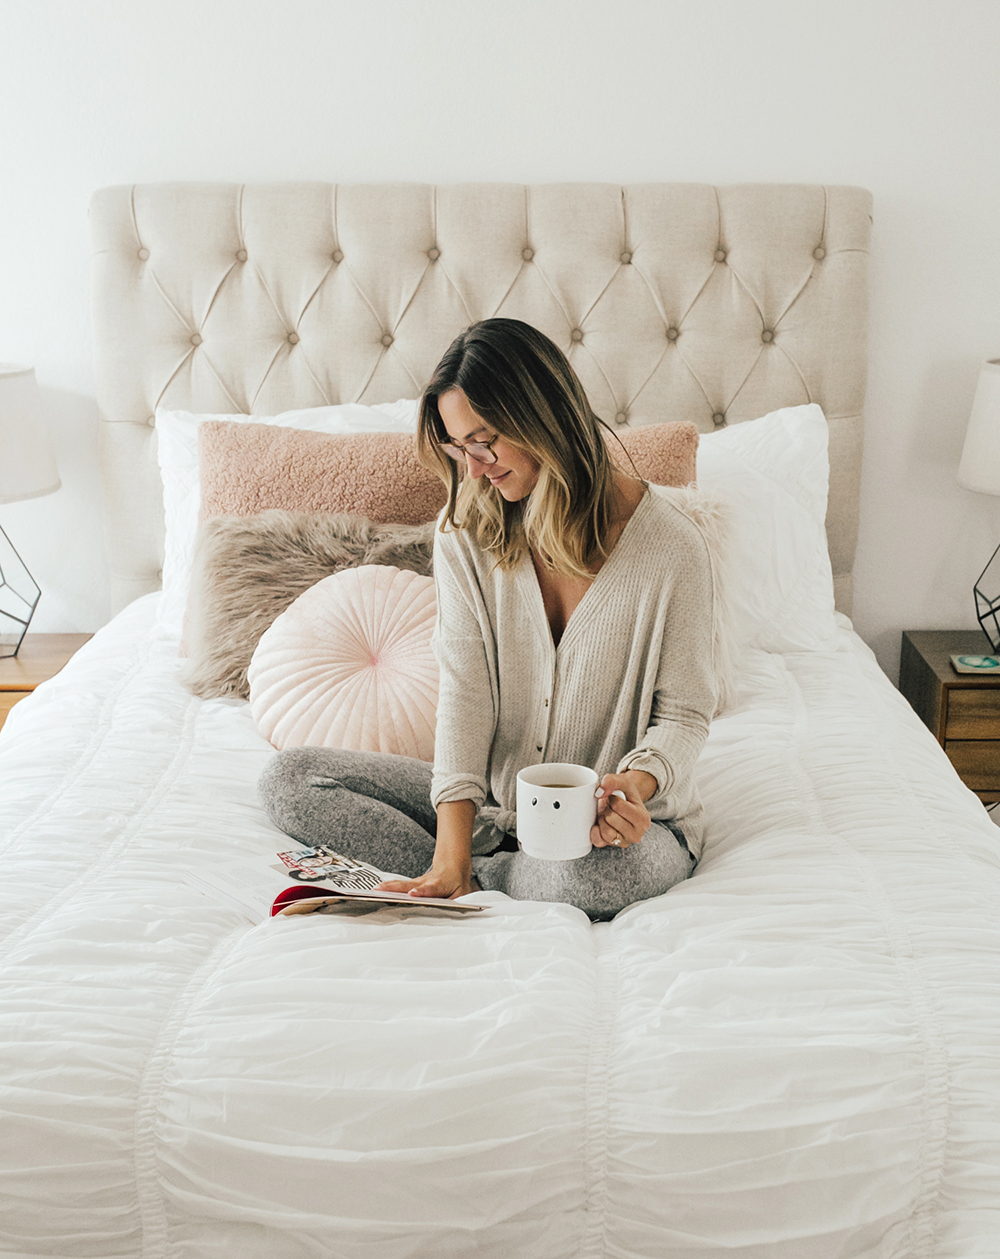 livvyland-blog-olivia-watson-bedroom-bedding-decor-decoration-blush-white-interiors-urban-outfitters-3